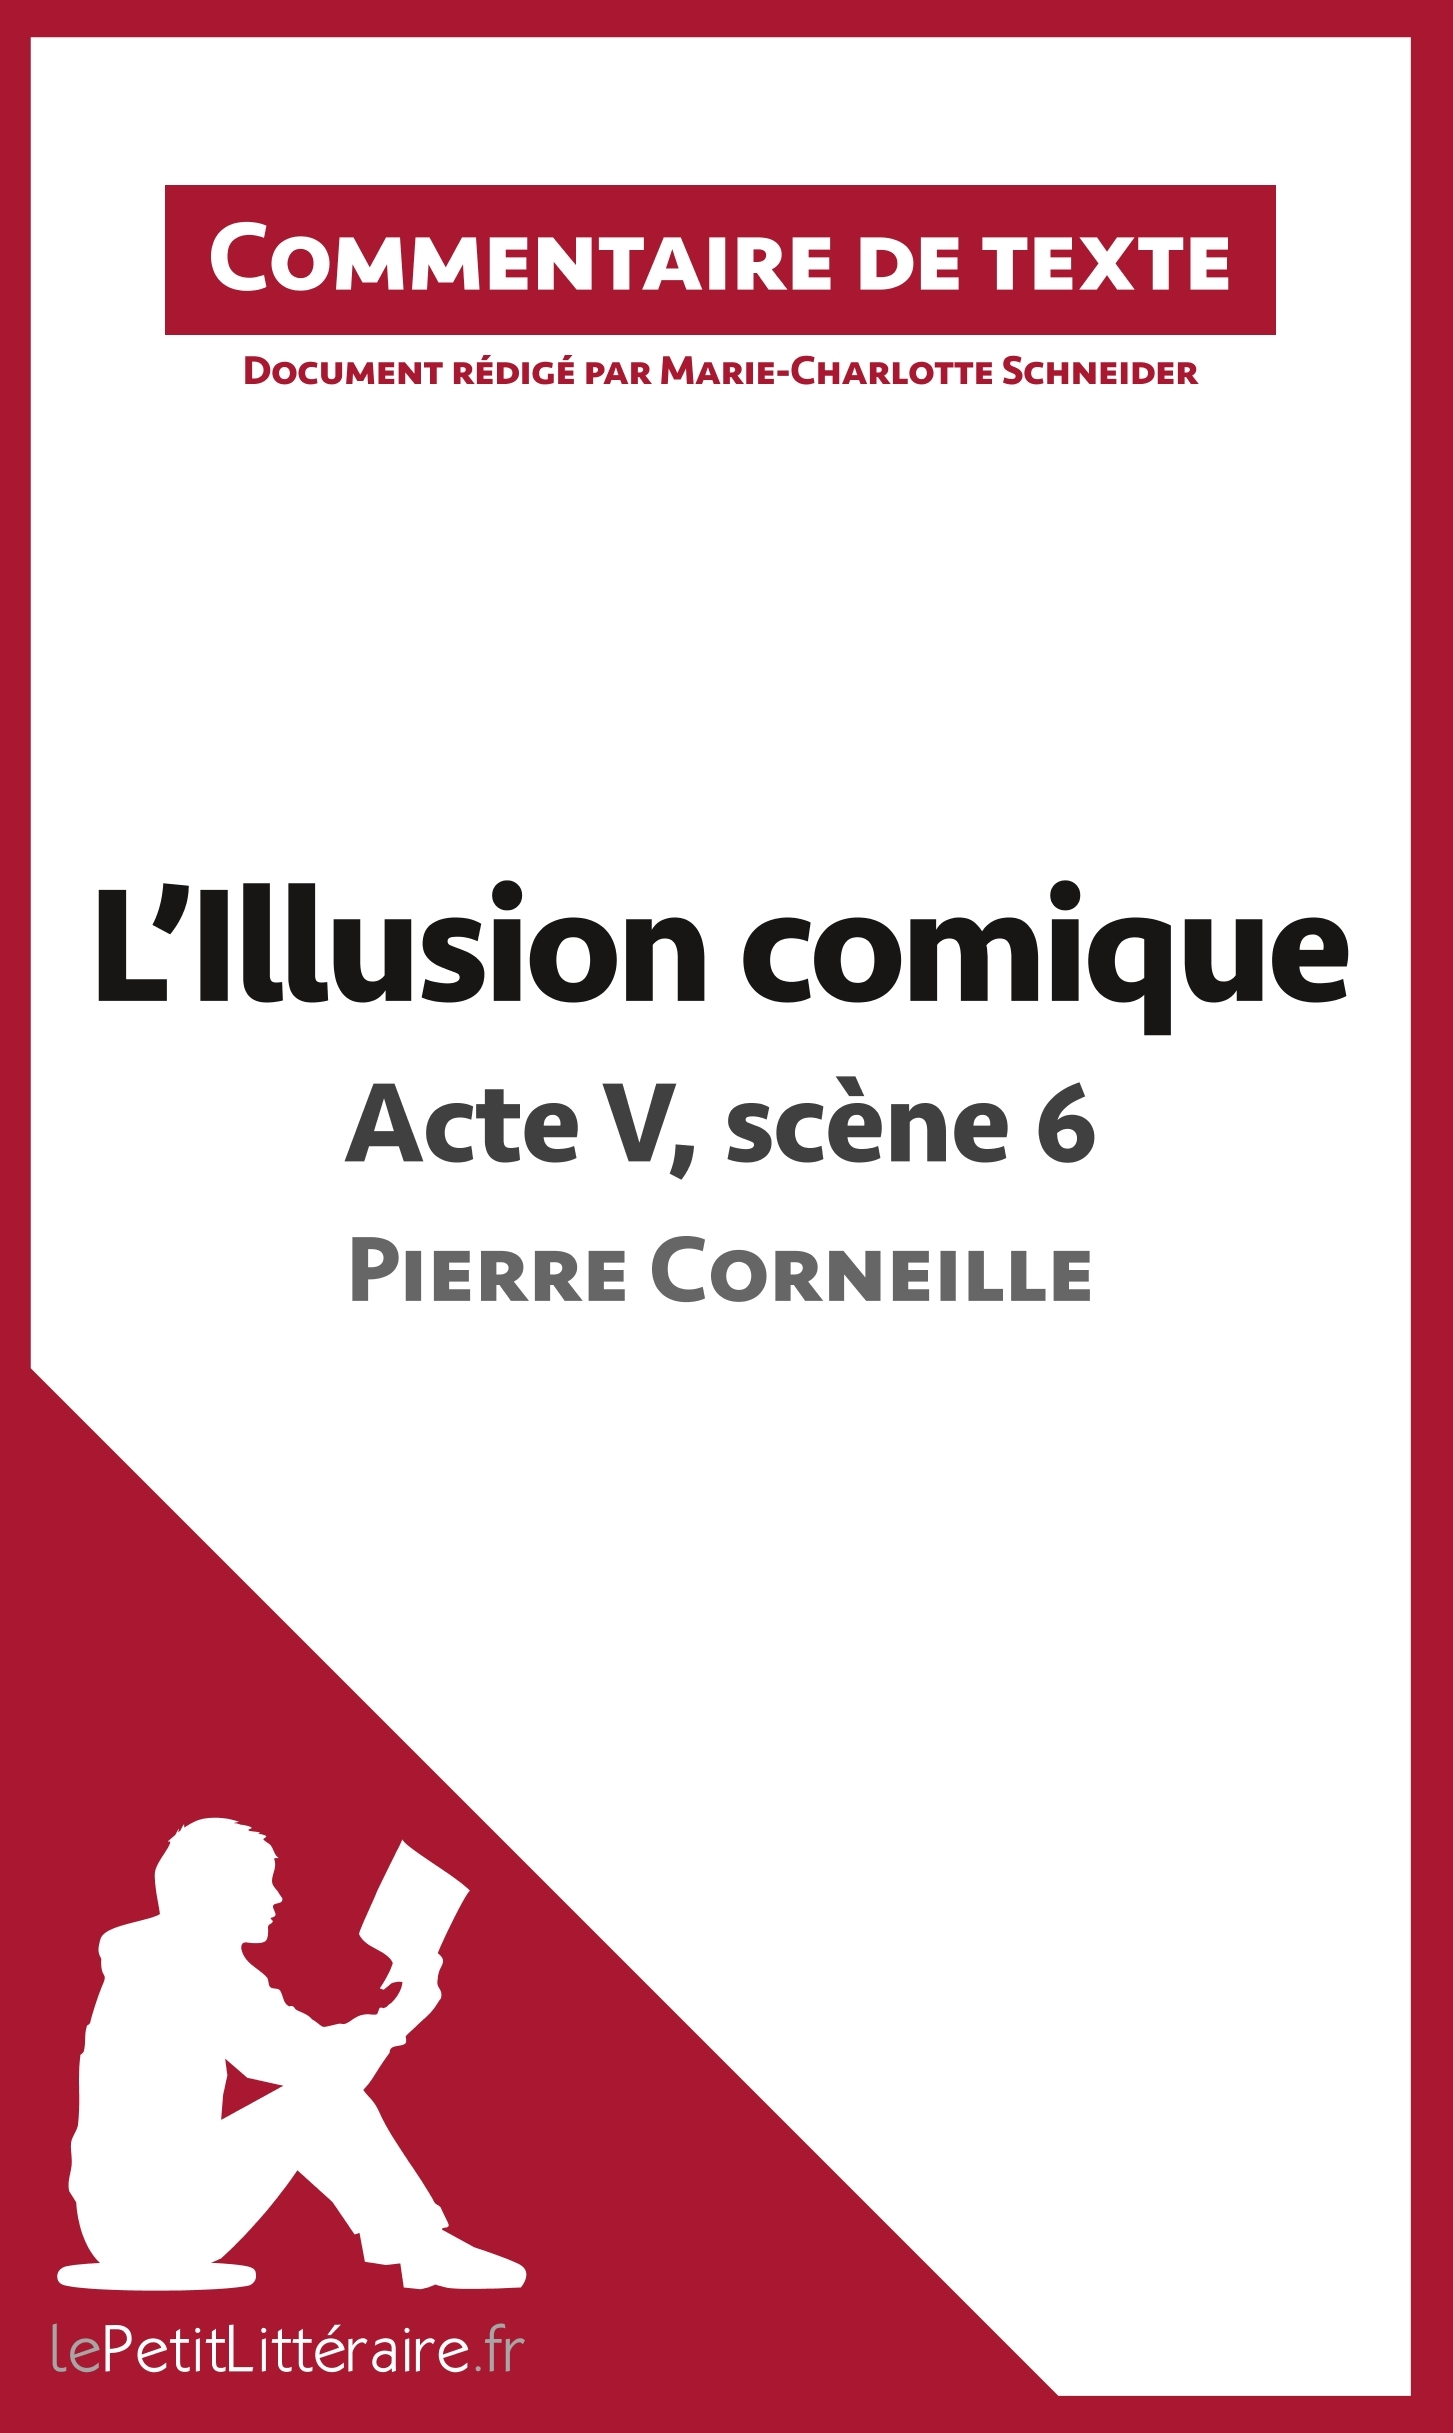 COMMENTAIRE COMPOSE L ILLUSION COMIQUE DE CORNEILLE ACTE V SCENE 6